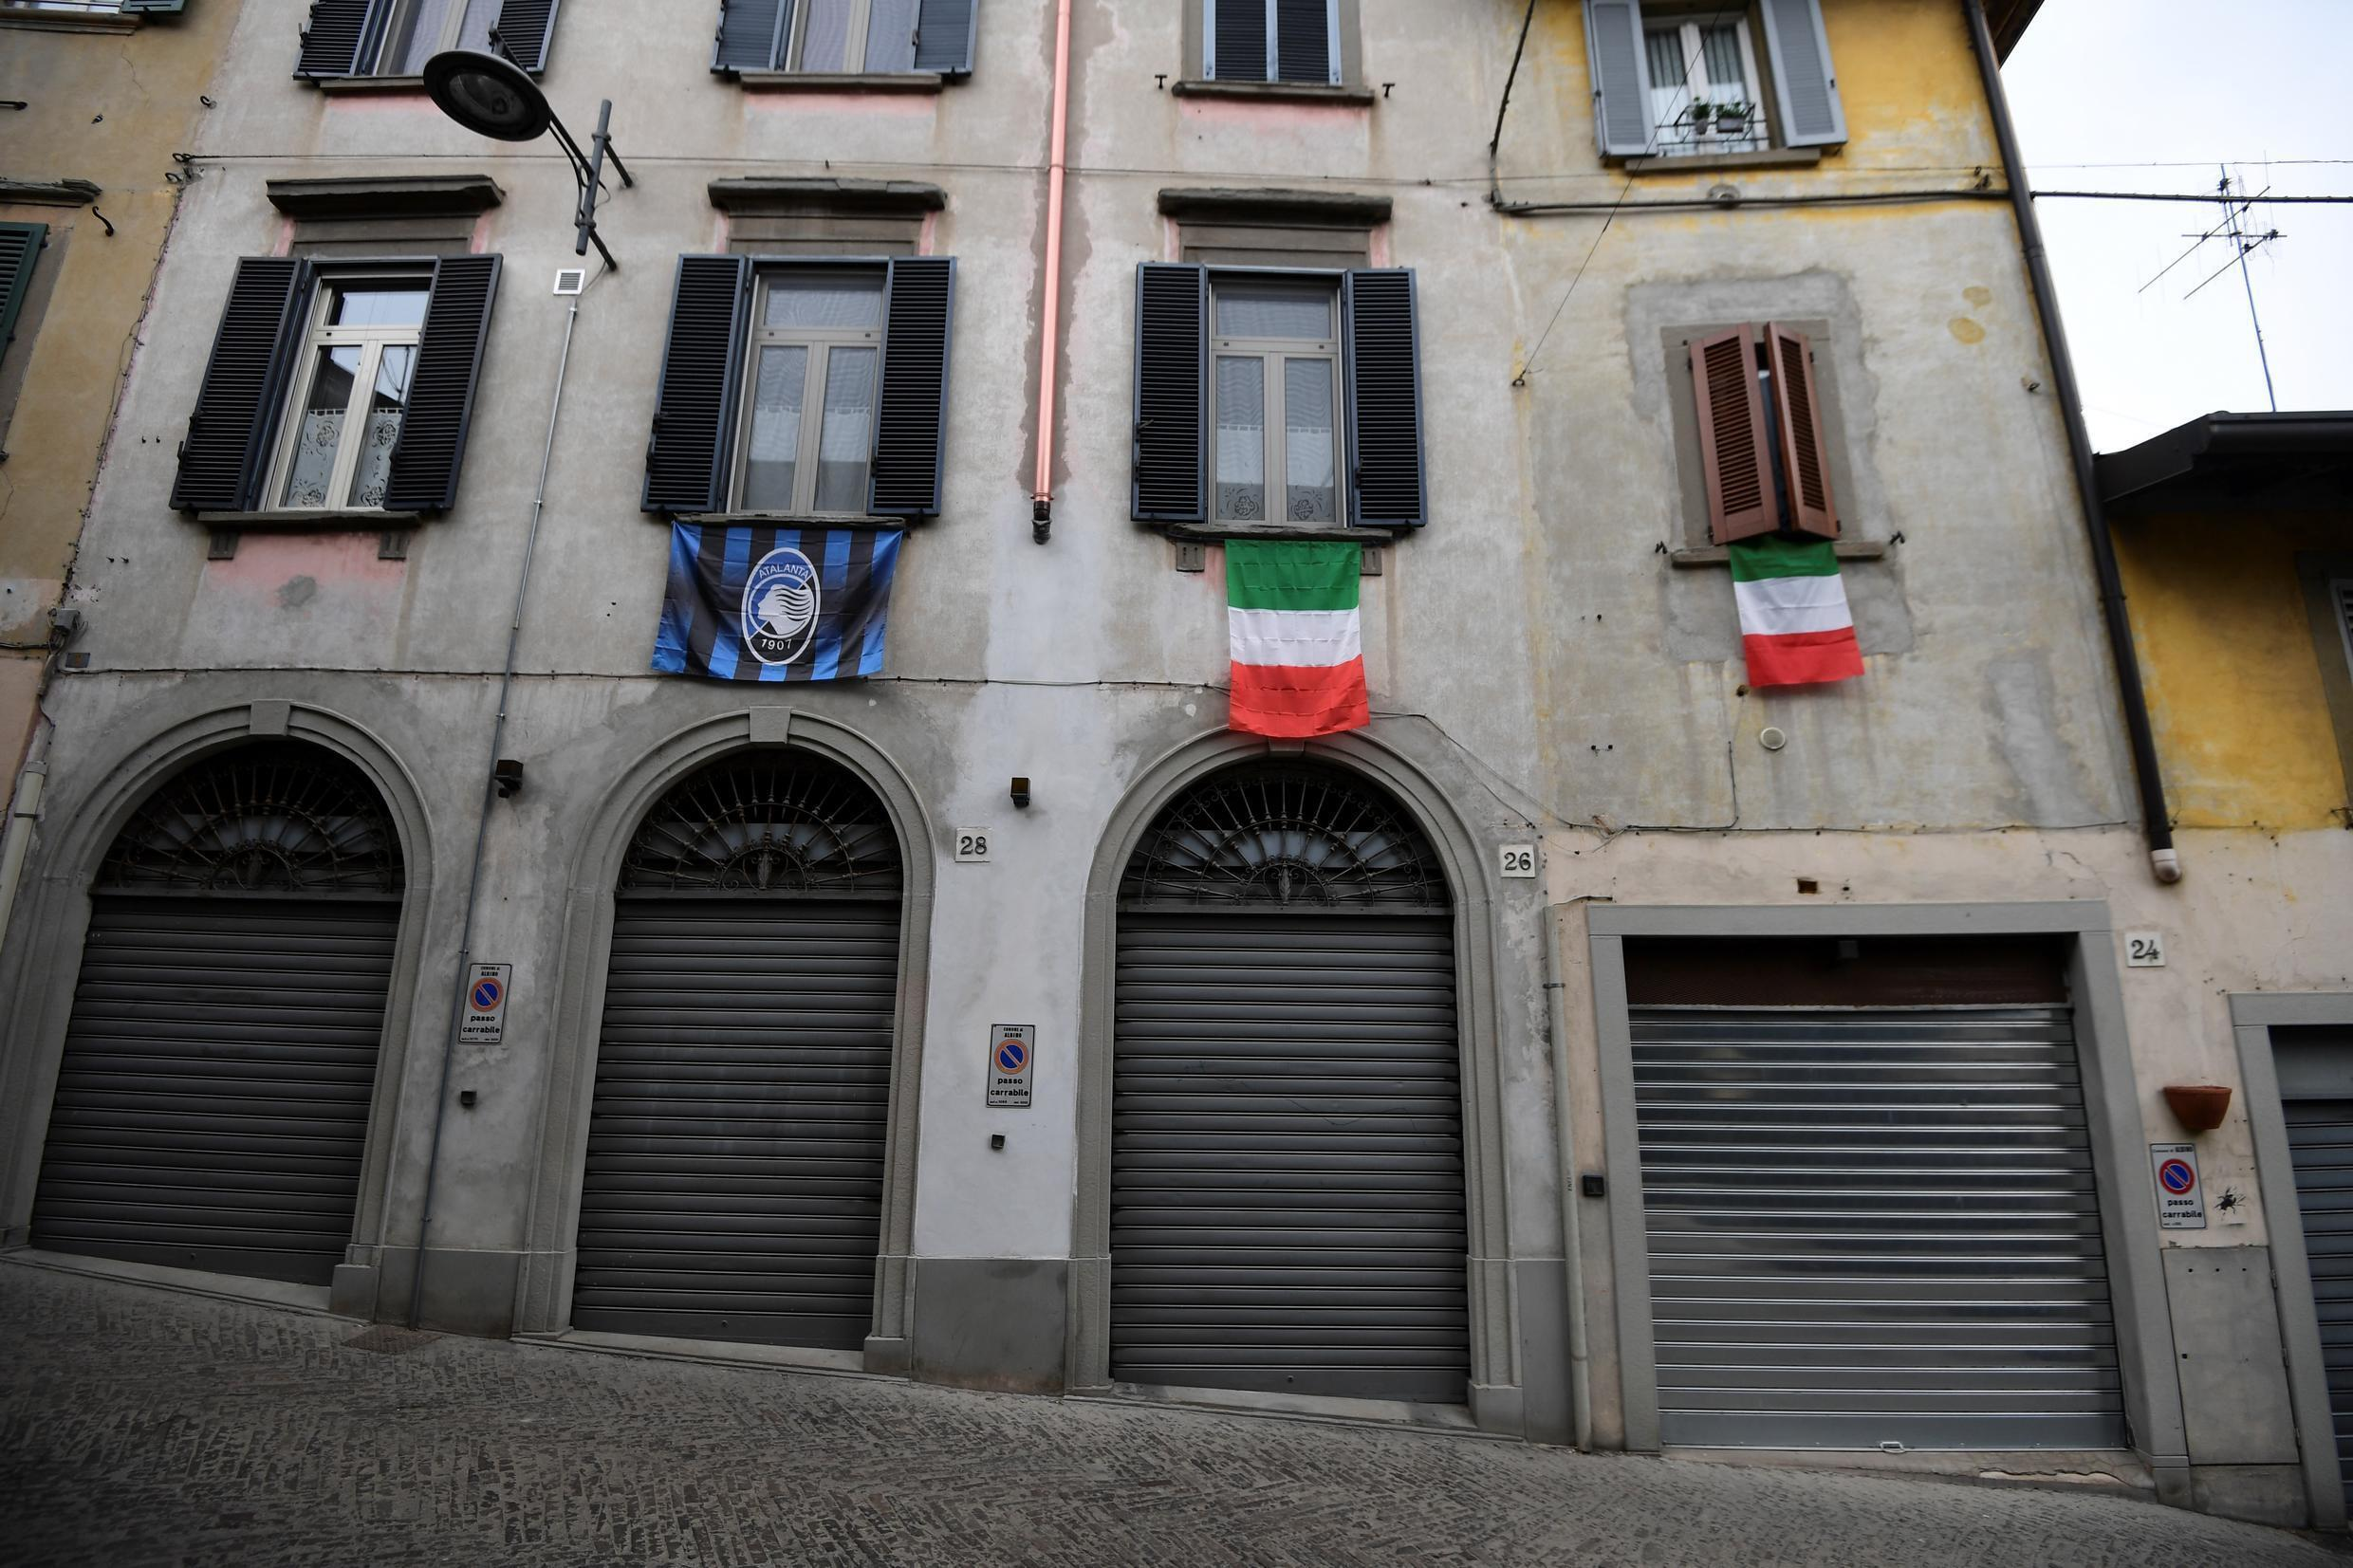 The flags of Italy and Atalanta hang over closed shops in a deserted street of Albino, near Bergamo.